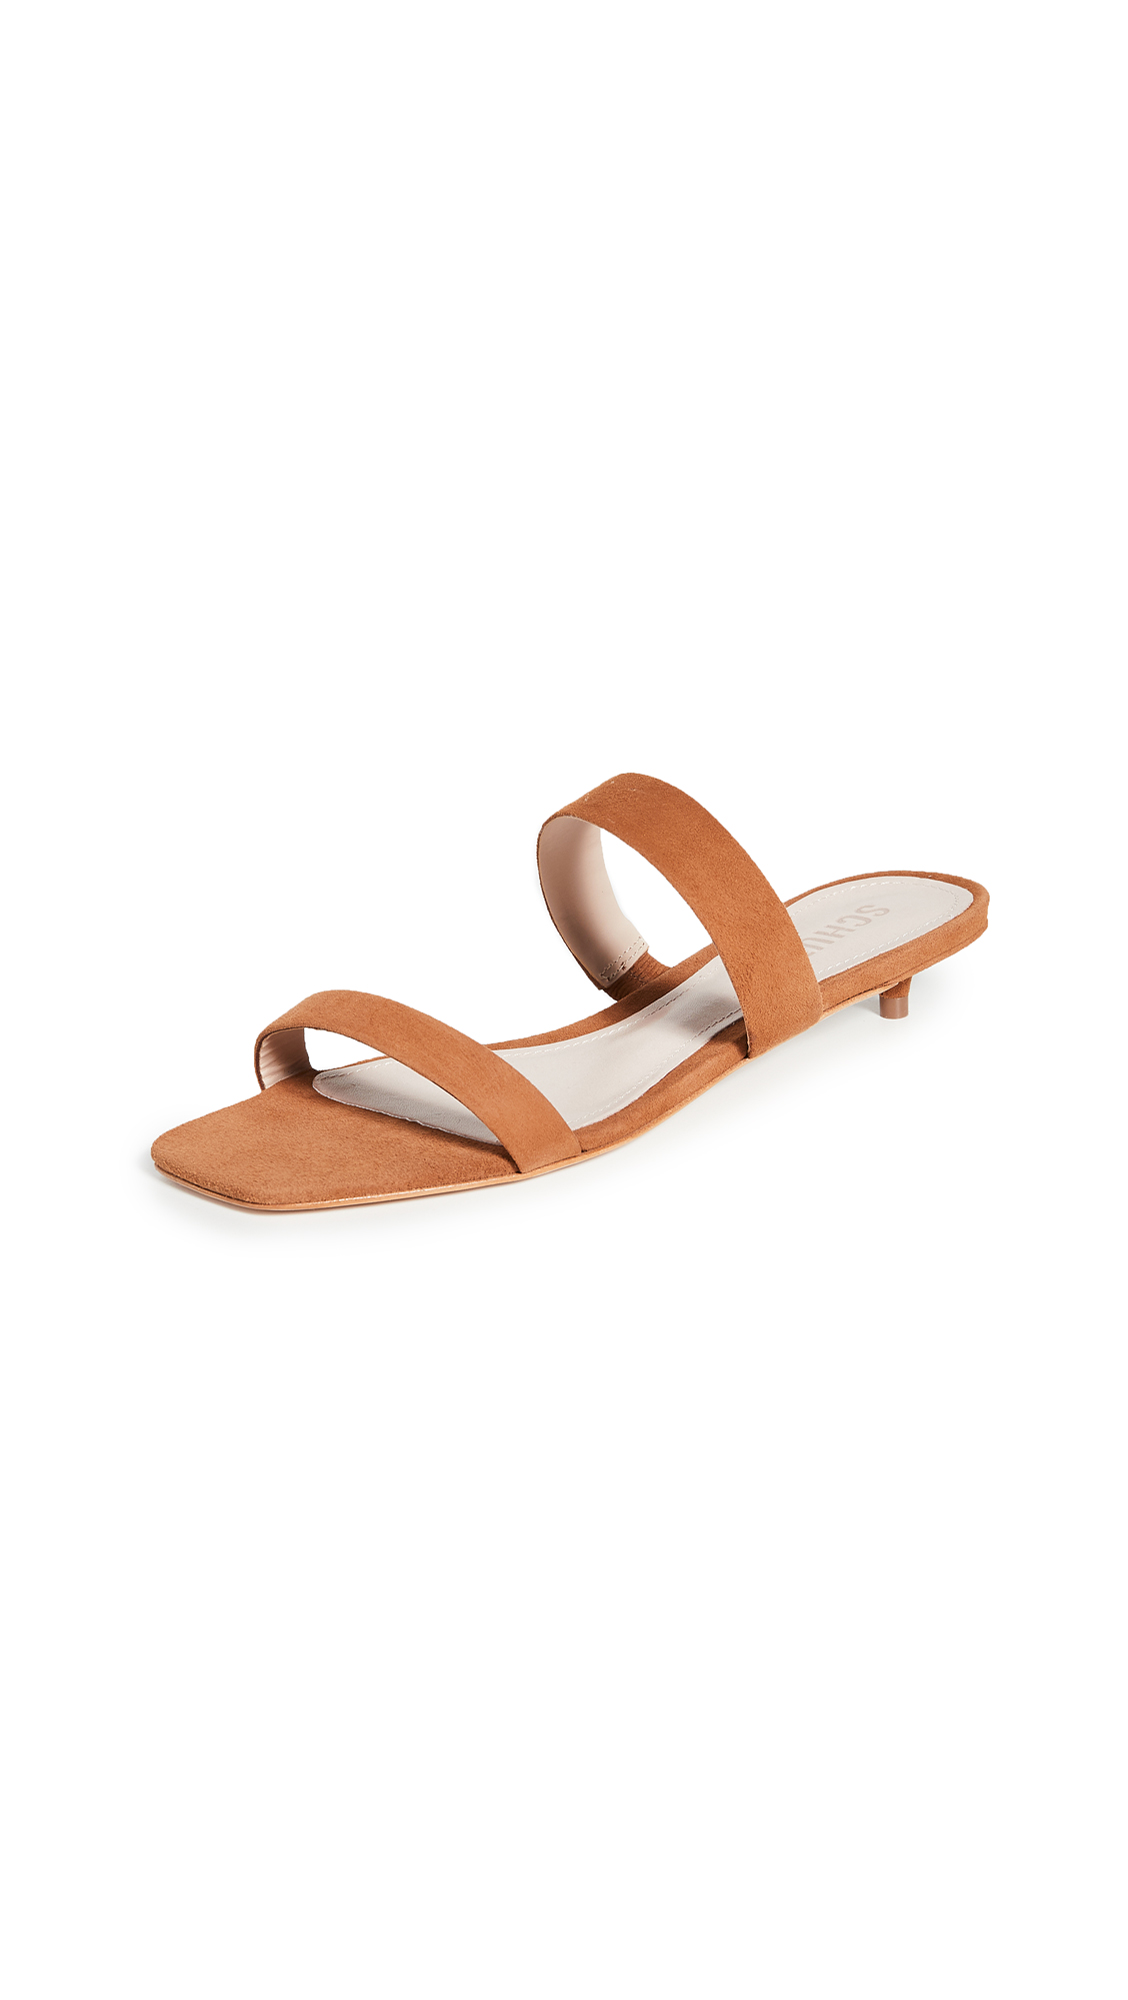 Buy Schutz online - photo of Schutz Heidi Slides